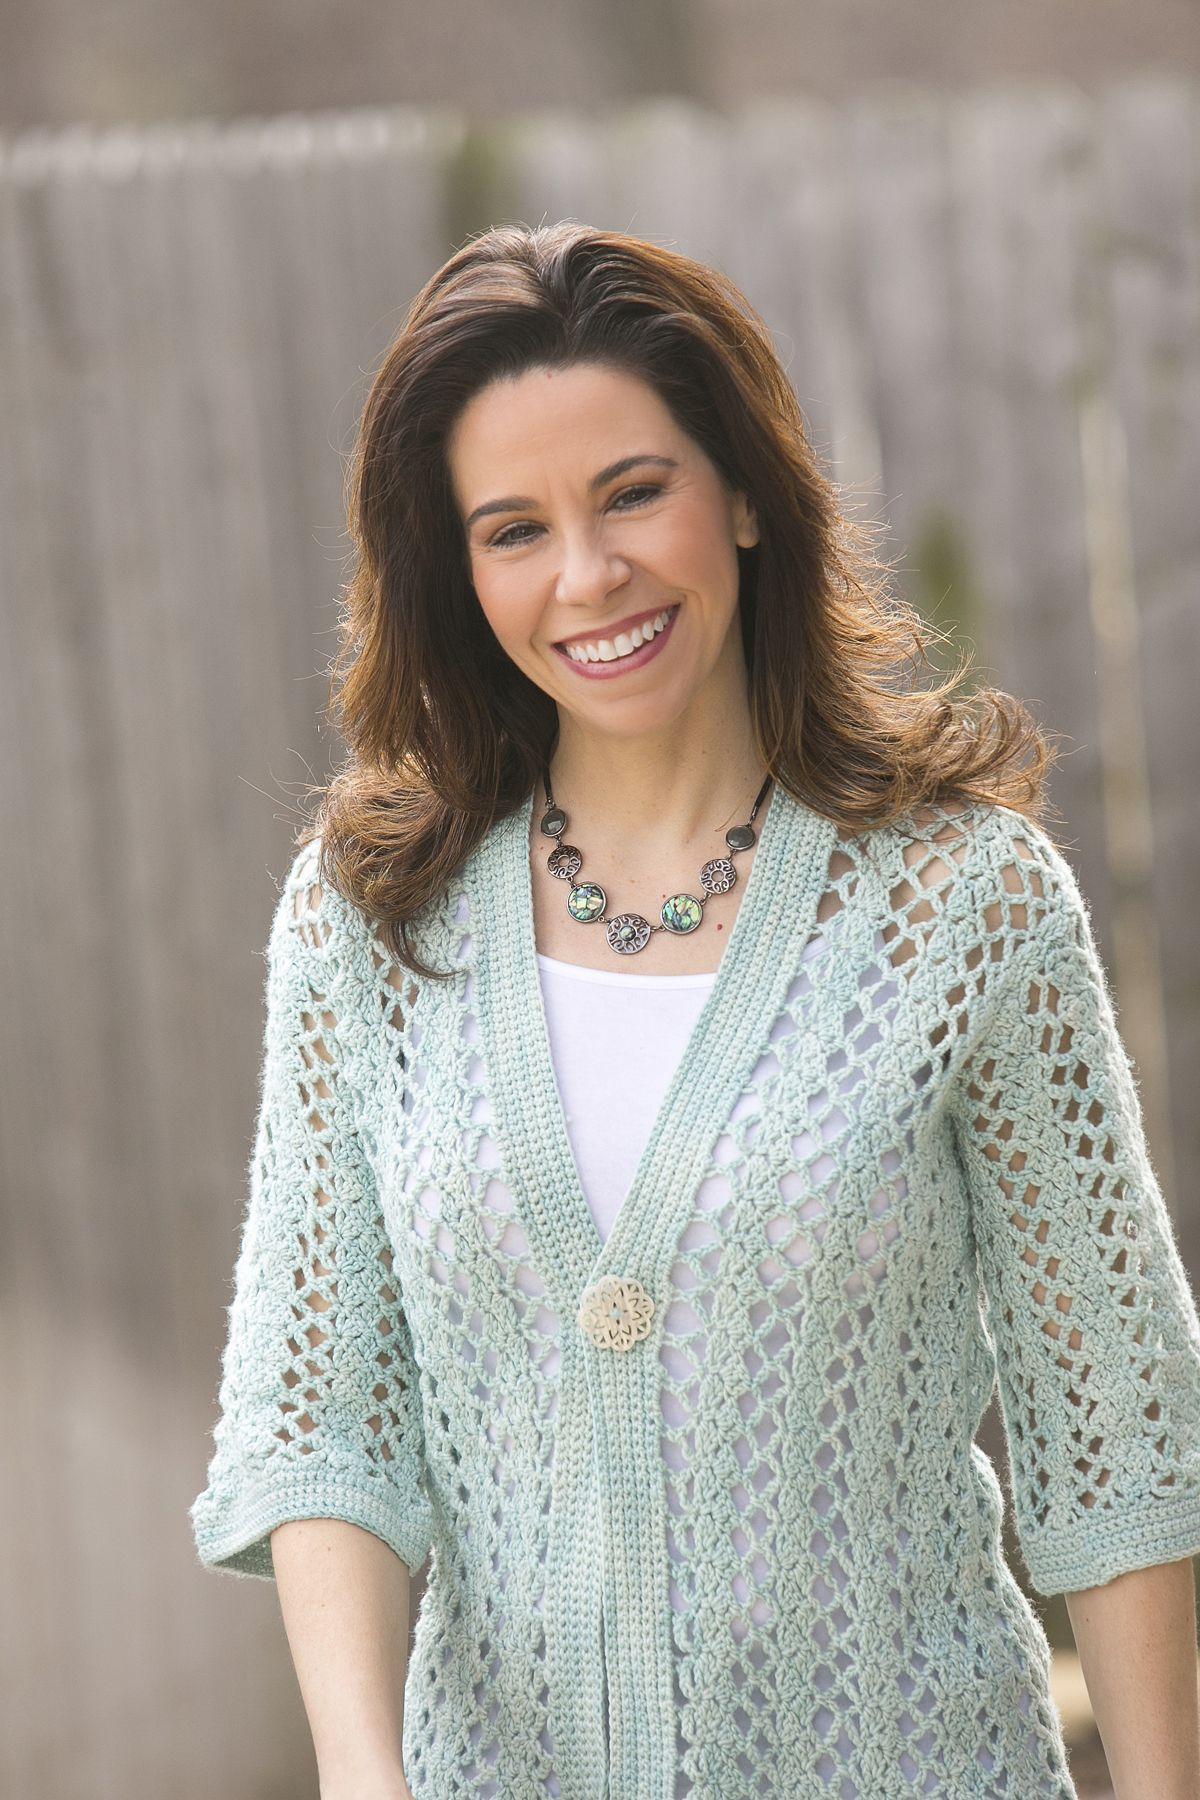 Mint Breeze Cardigan - Three-quarter length sleeves and clean, unfussy details make the cardigan versatile enough to wear over jeans and a camisole or over an elegant silk blouse. Get the subscription today!